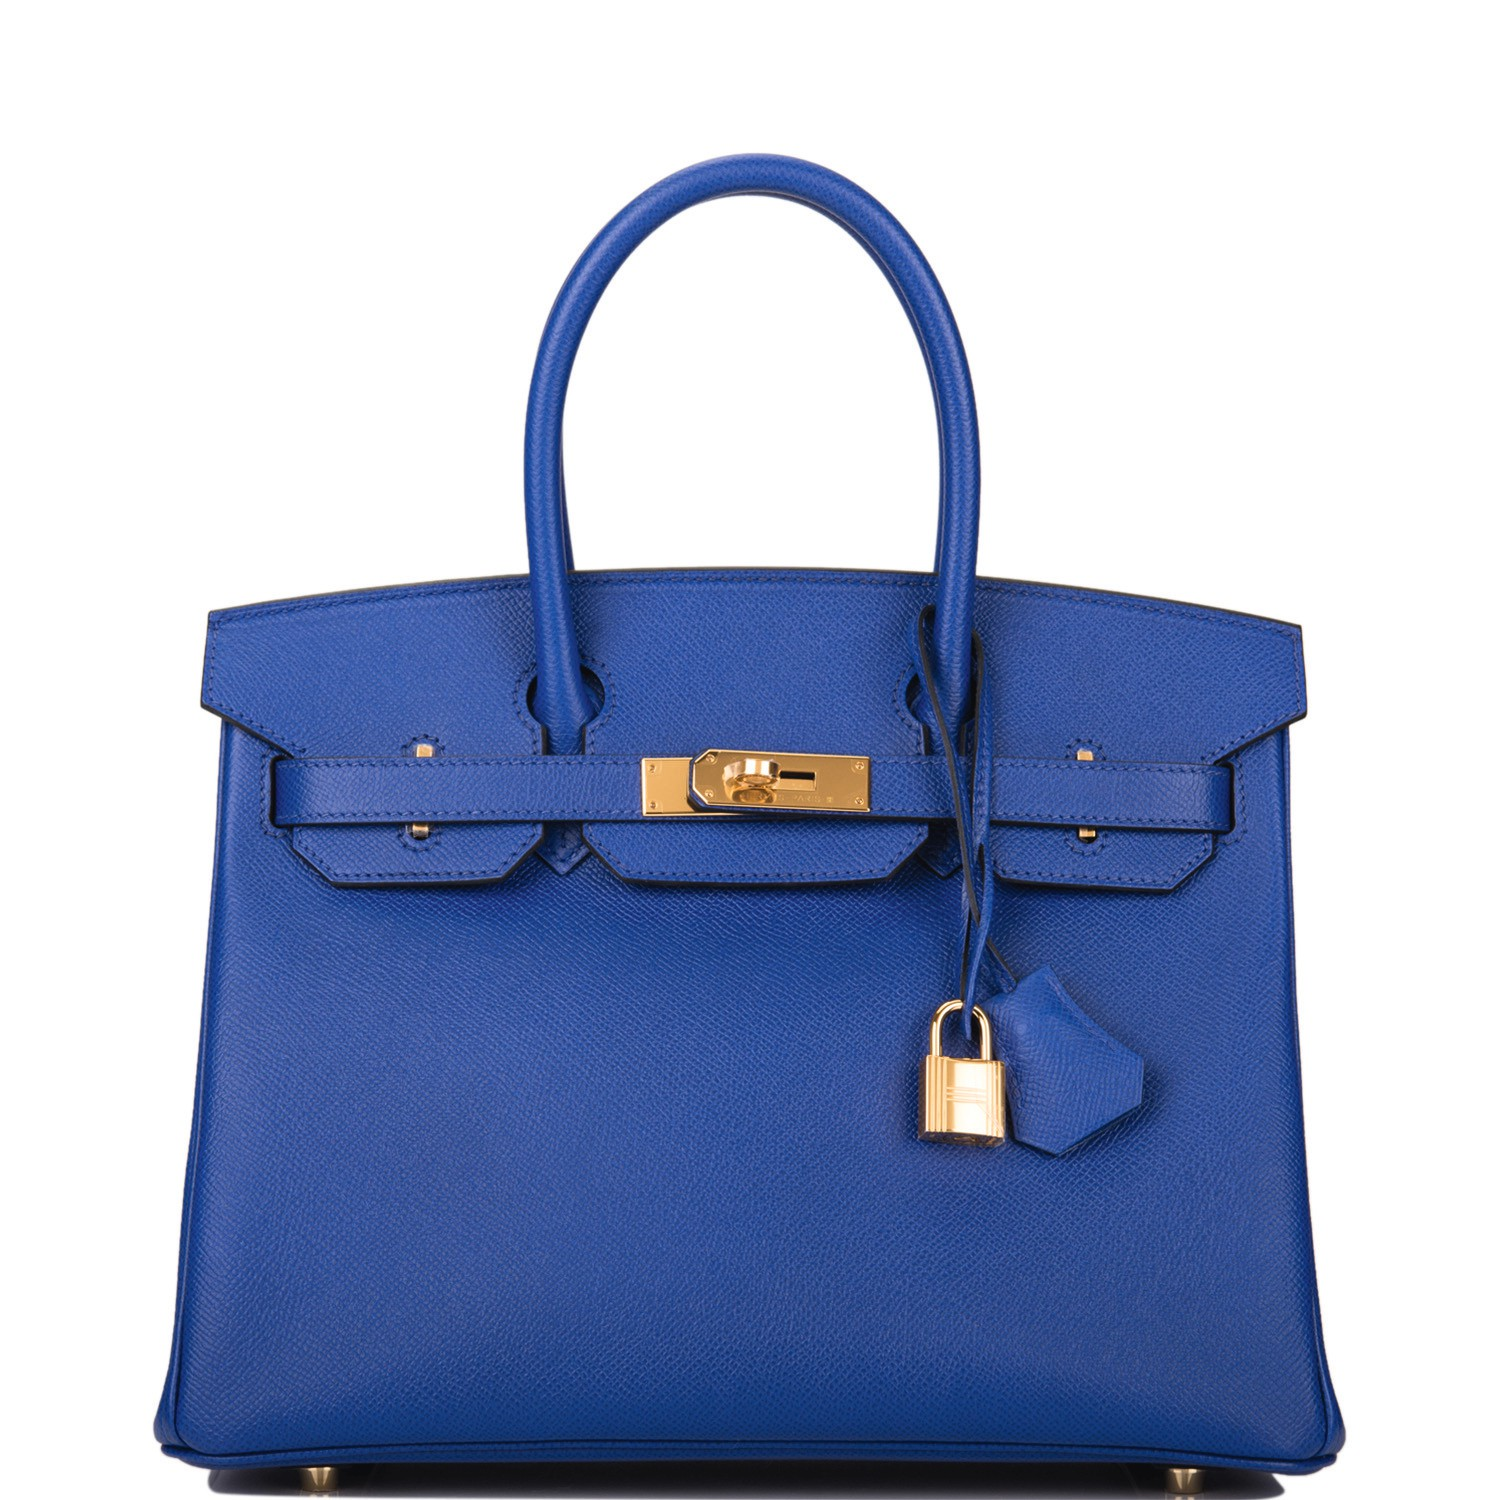 Hermès Bleu Electric Birkin 30cm of Epsom Leather with Gold Hardware